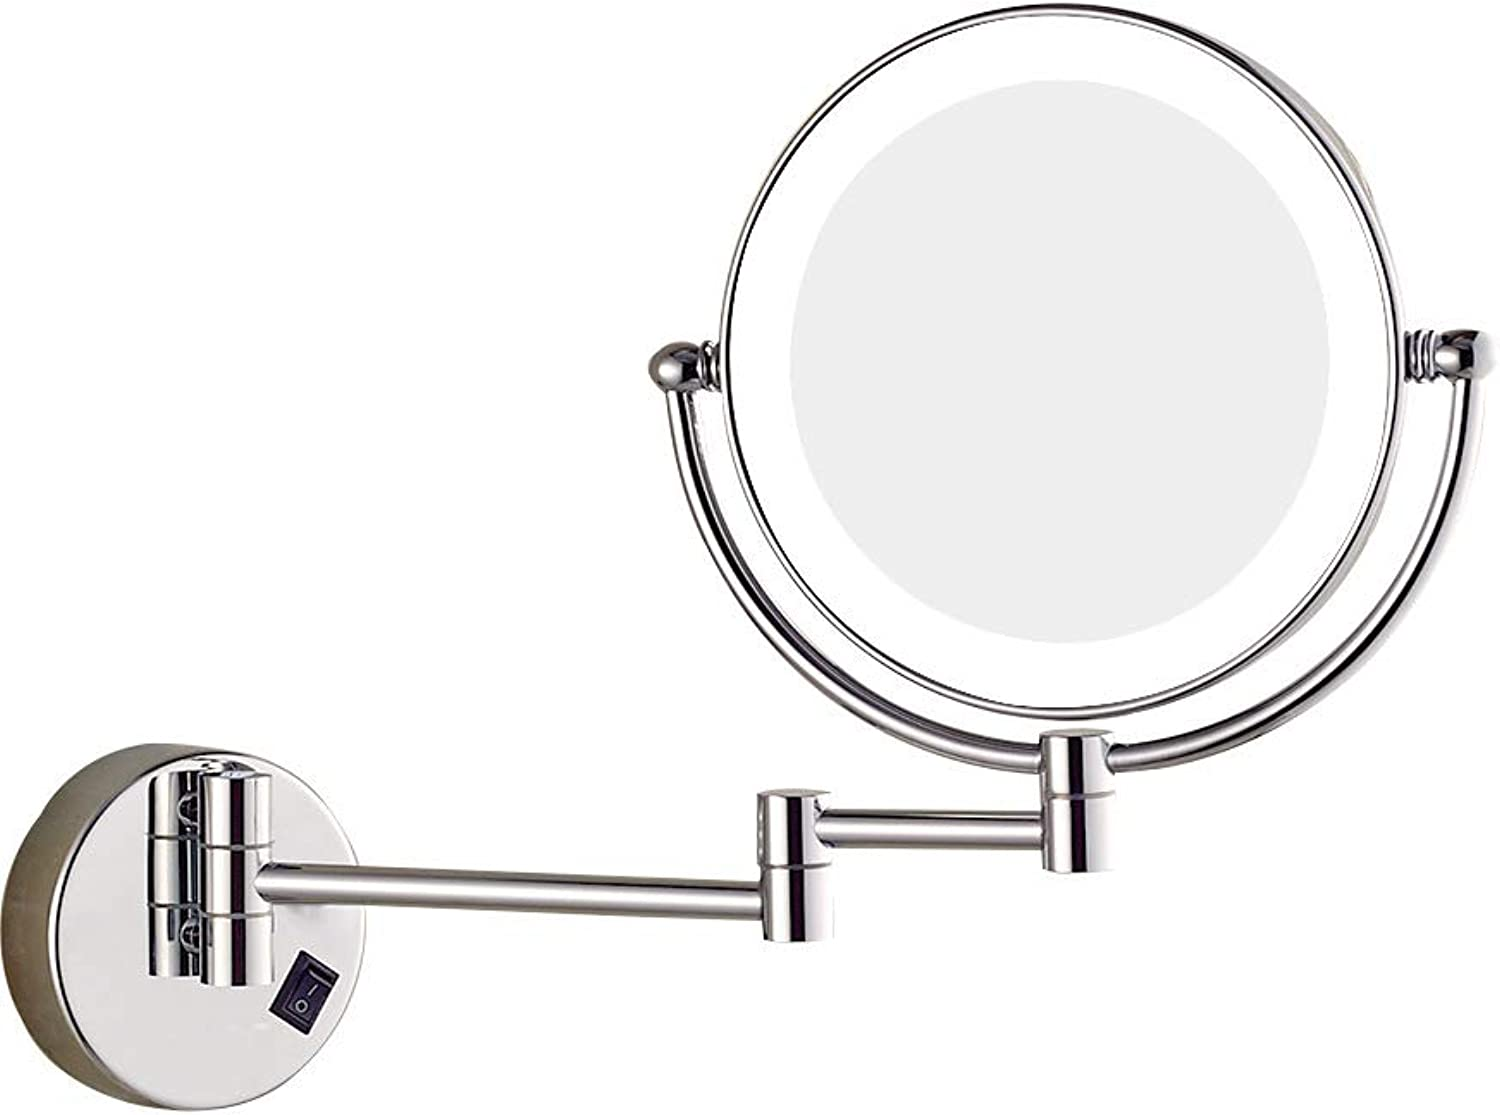 LED Lighted Wall Mount Makeup Mirror Two Sided 360° Swivel Mirror Magnification Chrome Finish for Bathroom Round